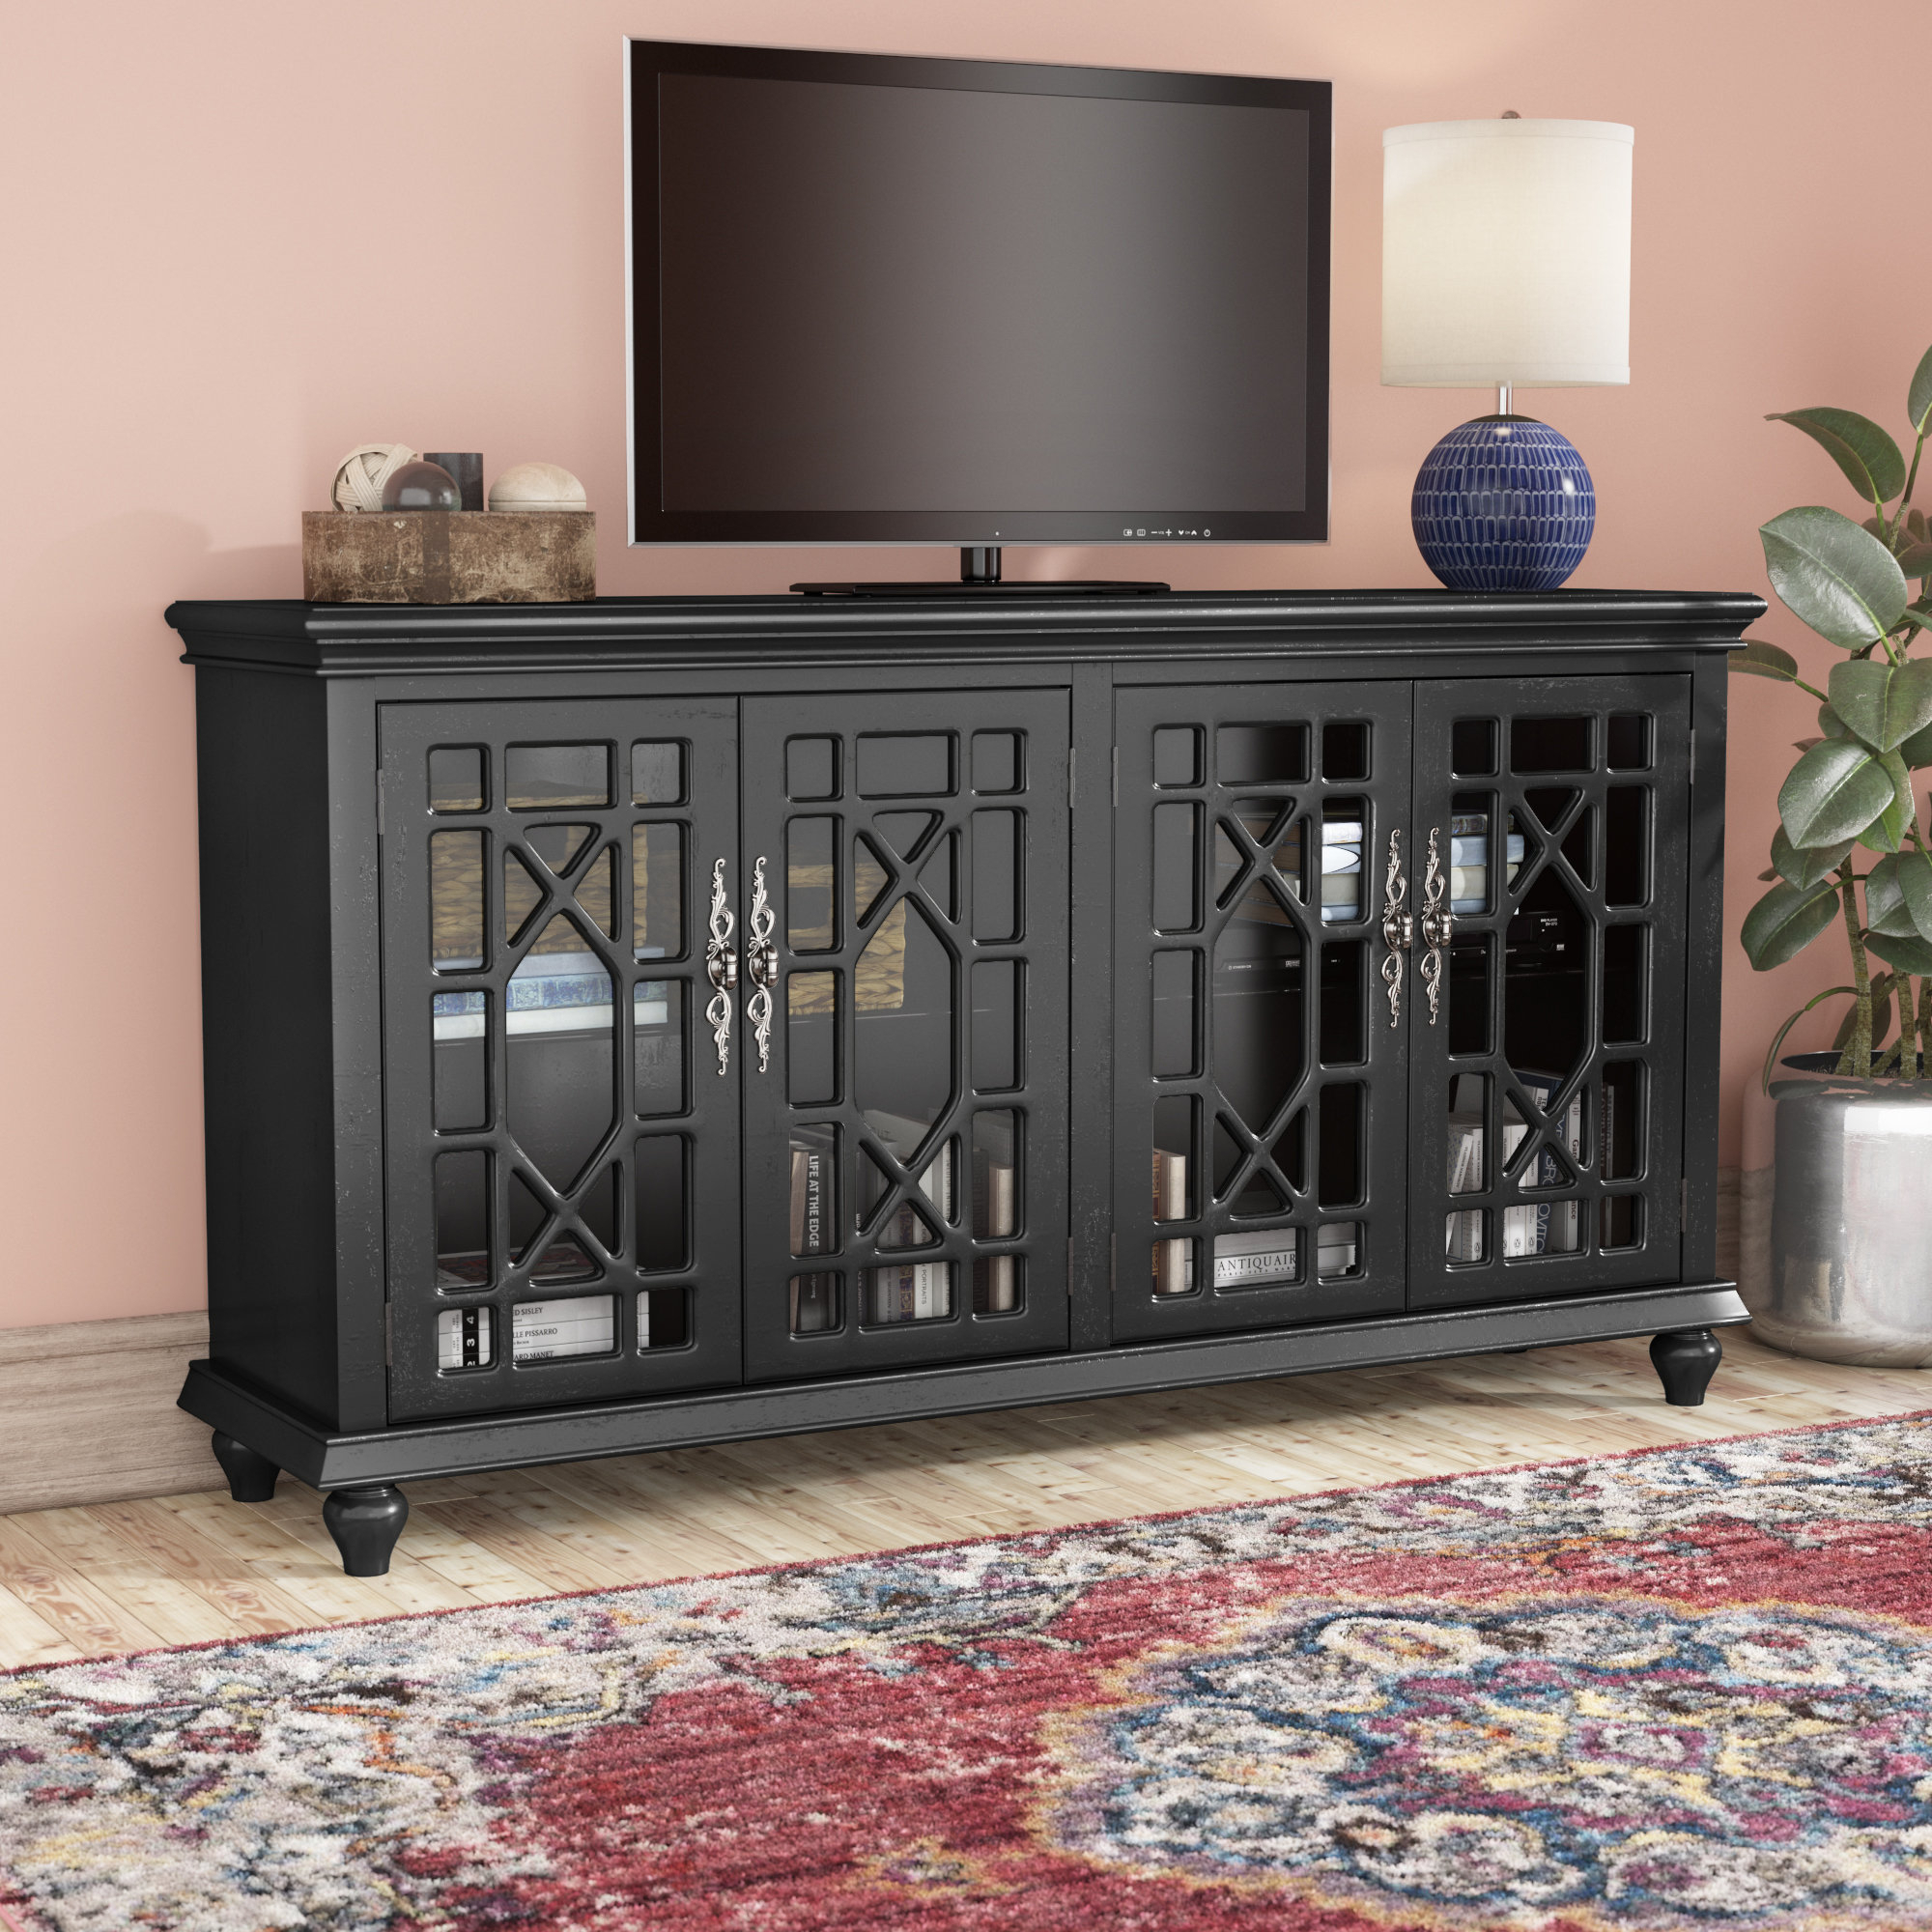 "Credenza Tv Stand You'll Love In 2019 | Wayfair with regard to Colefax Vintage Tv Stands For Tvs Up To 78"" (Image 13 of 30)"